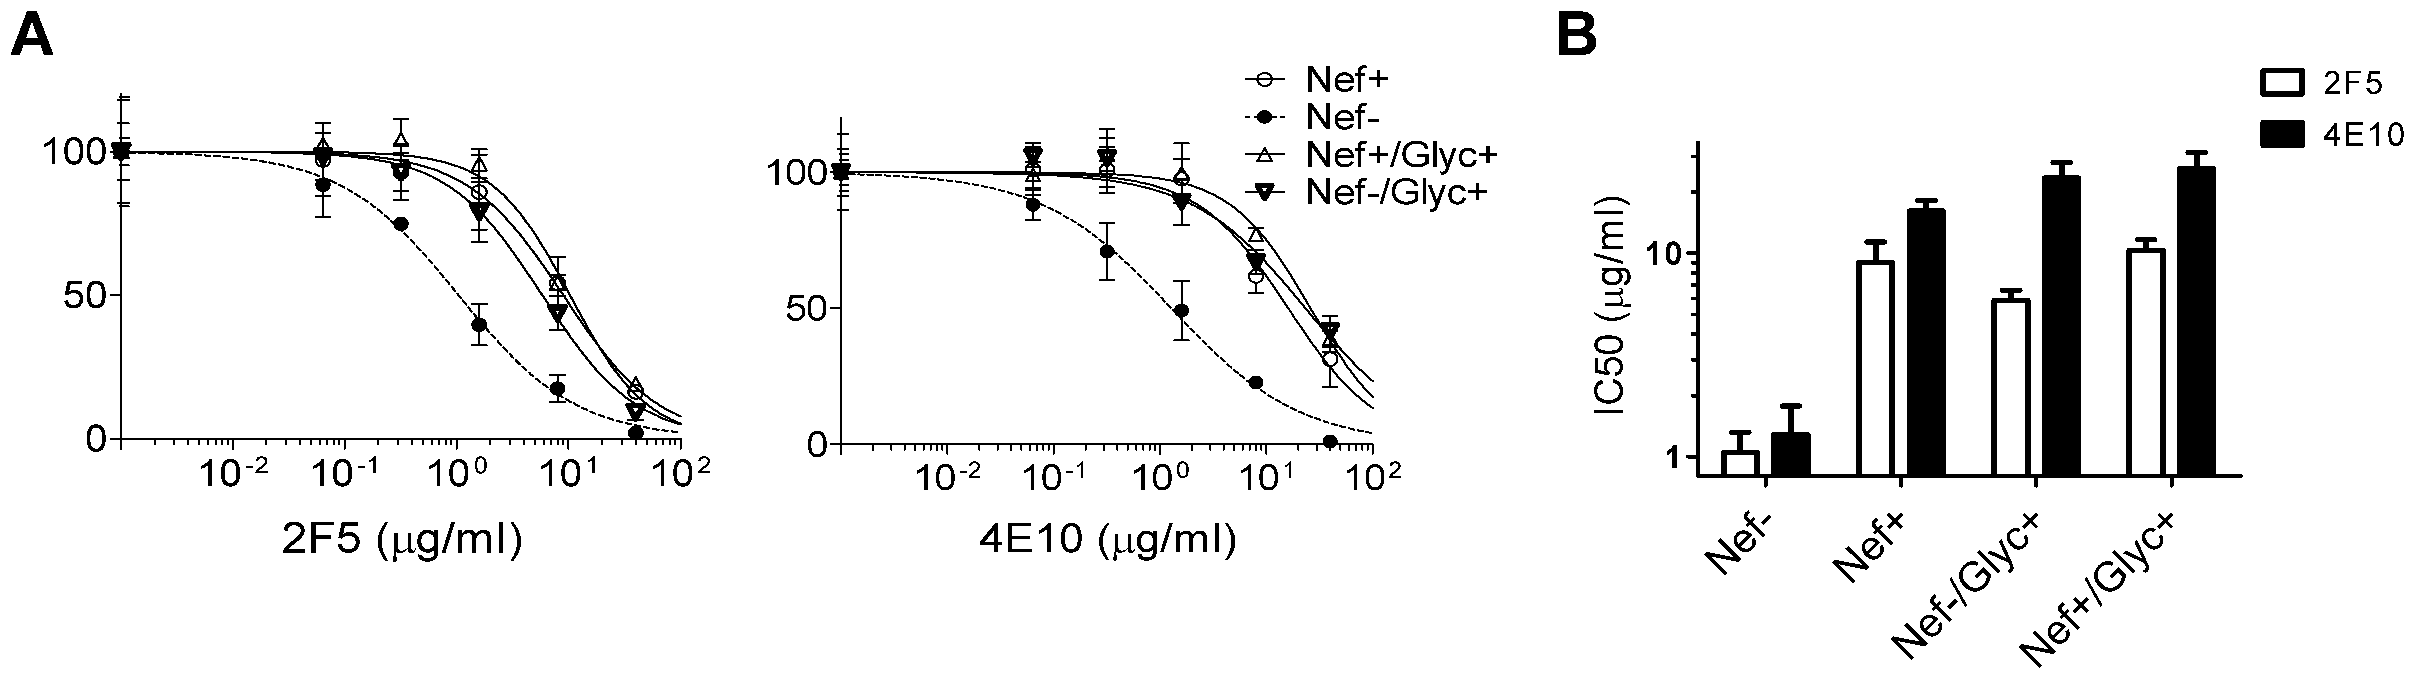 MoMLV Glycogag, like Nef, increases HIV-1 resistance to 2F5 and 4E10.